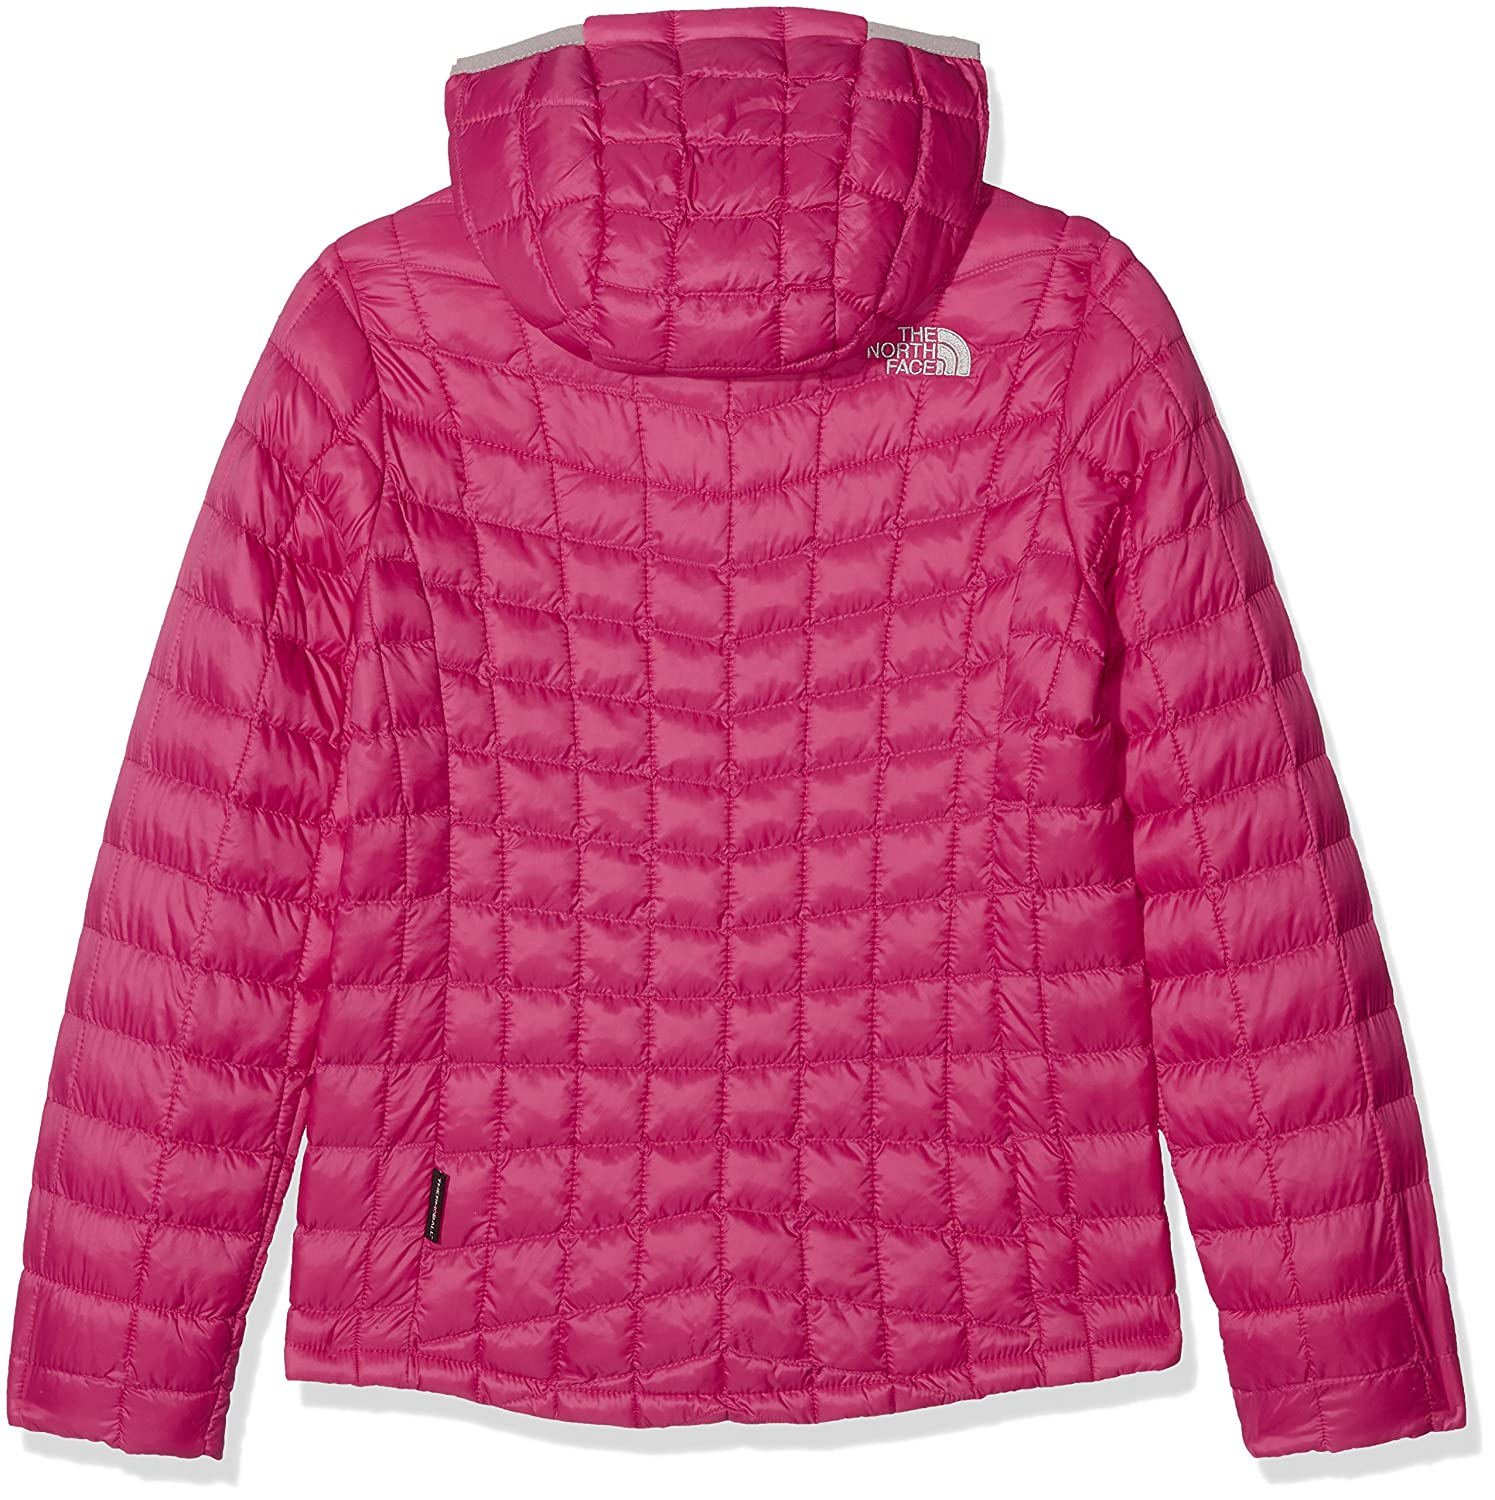 998d6d853e THE NORTH FACE Thermoball Veste à Capuche Fille NOS67|#The North ...